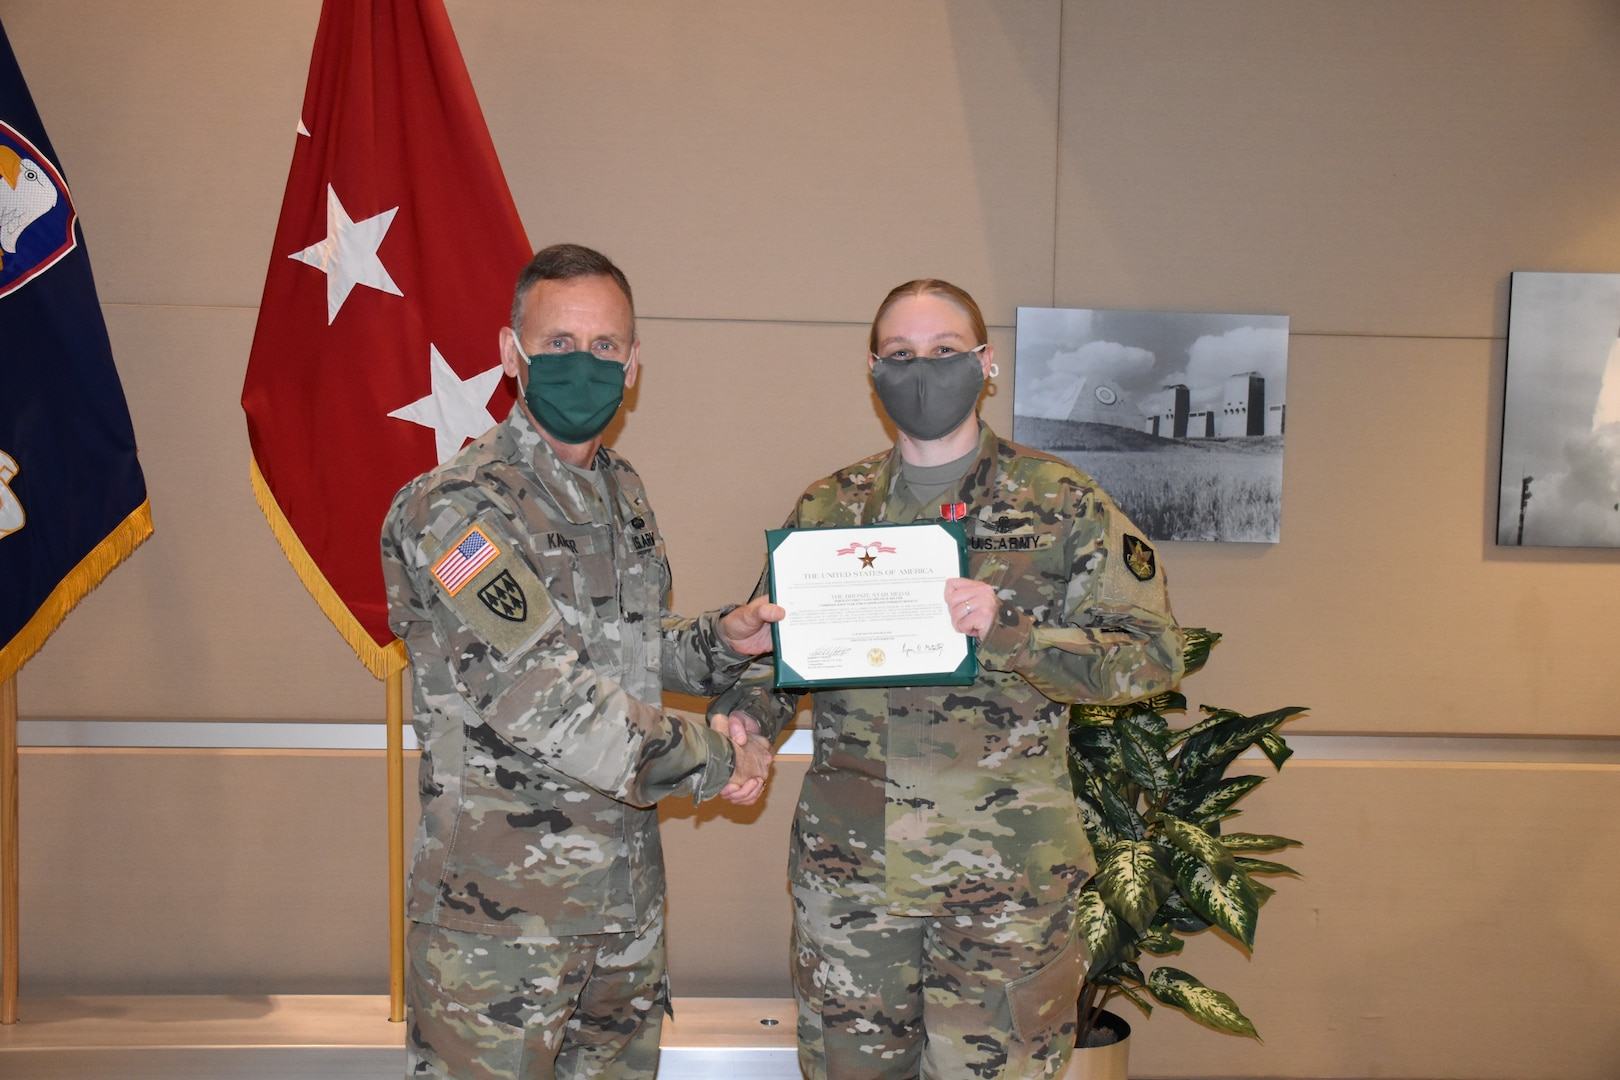 Army sergeant receives award from Army general.